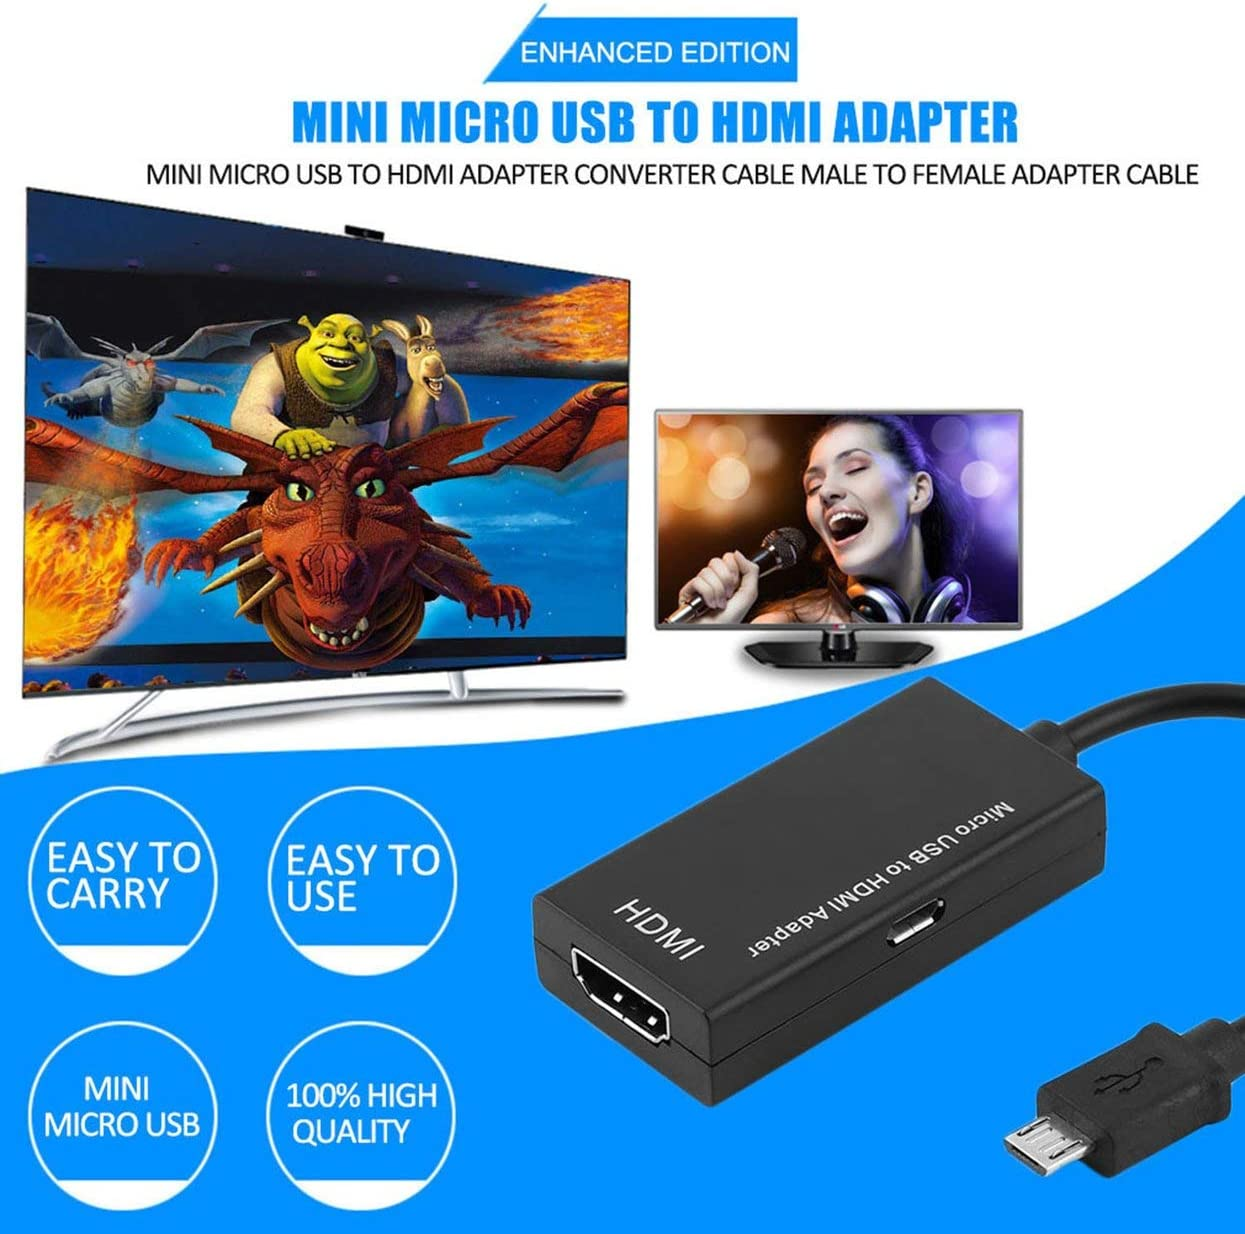 Detectorcatty Mini Micro USB to HDMI Adapter Converter Cable Portable Micro USB Male to Female HDMI Adapter Cable Black